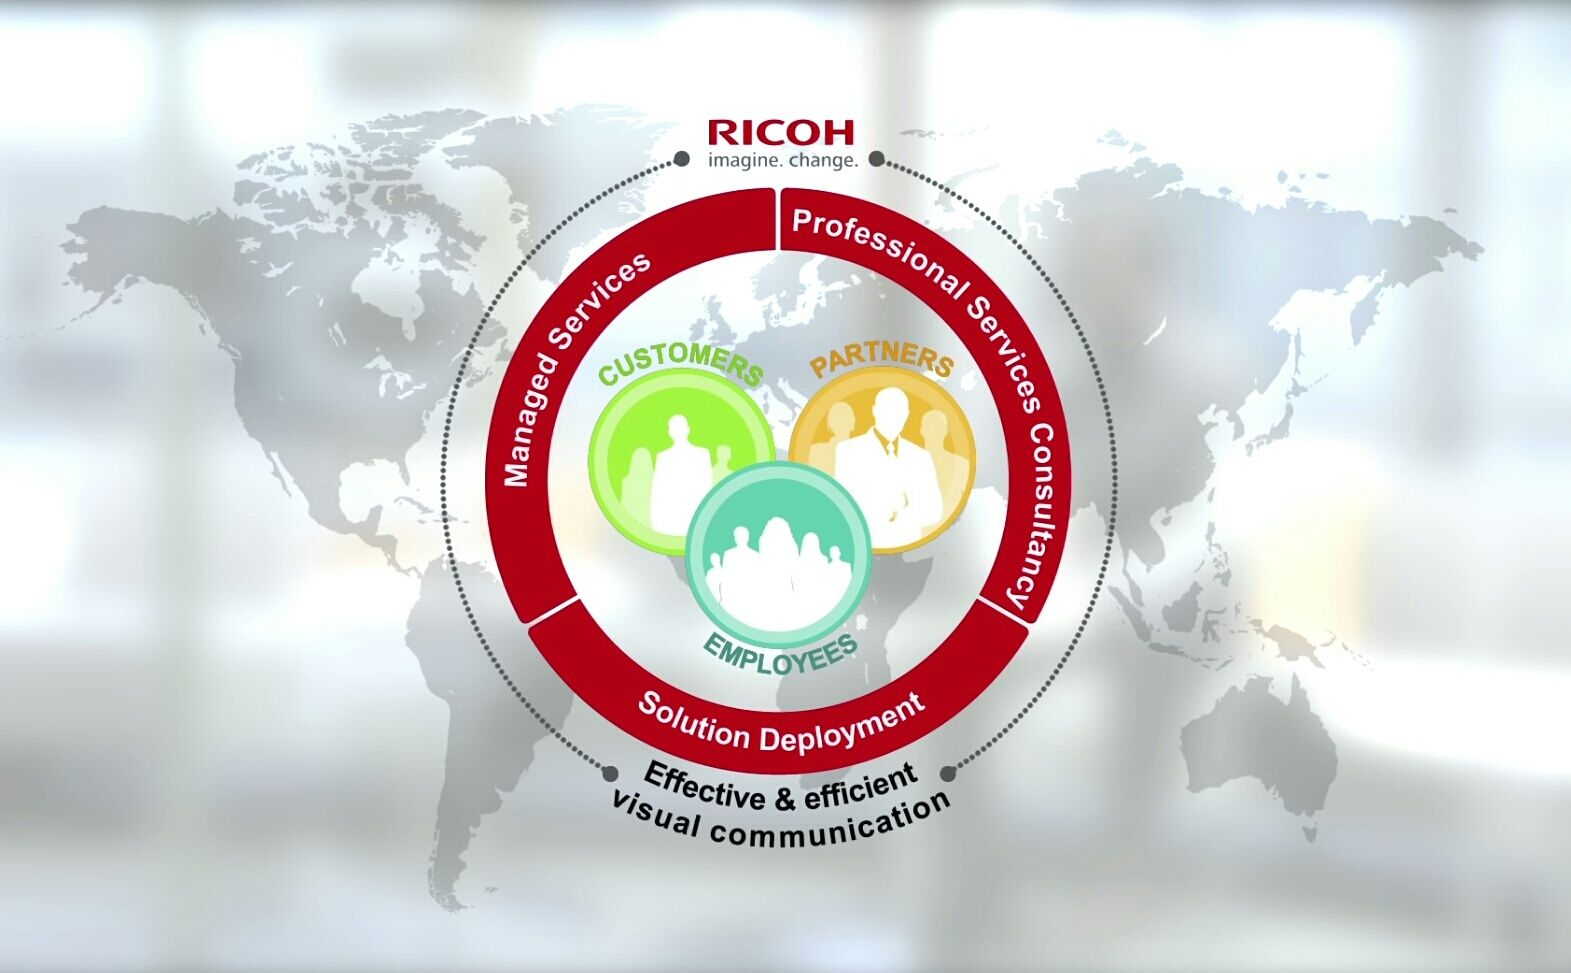 Ricoh Visual Communications solutions